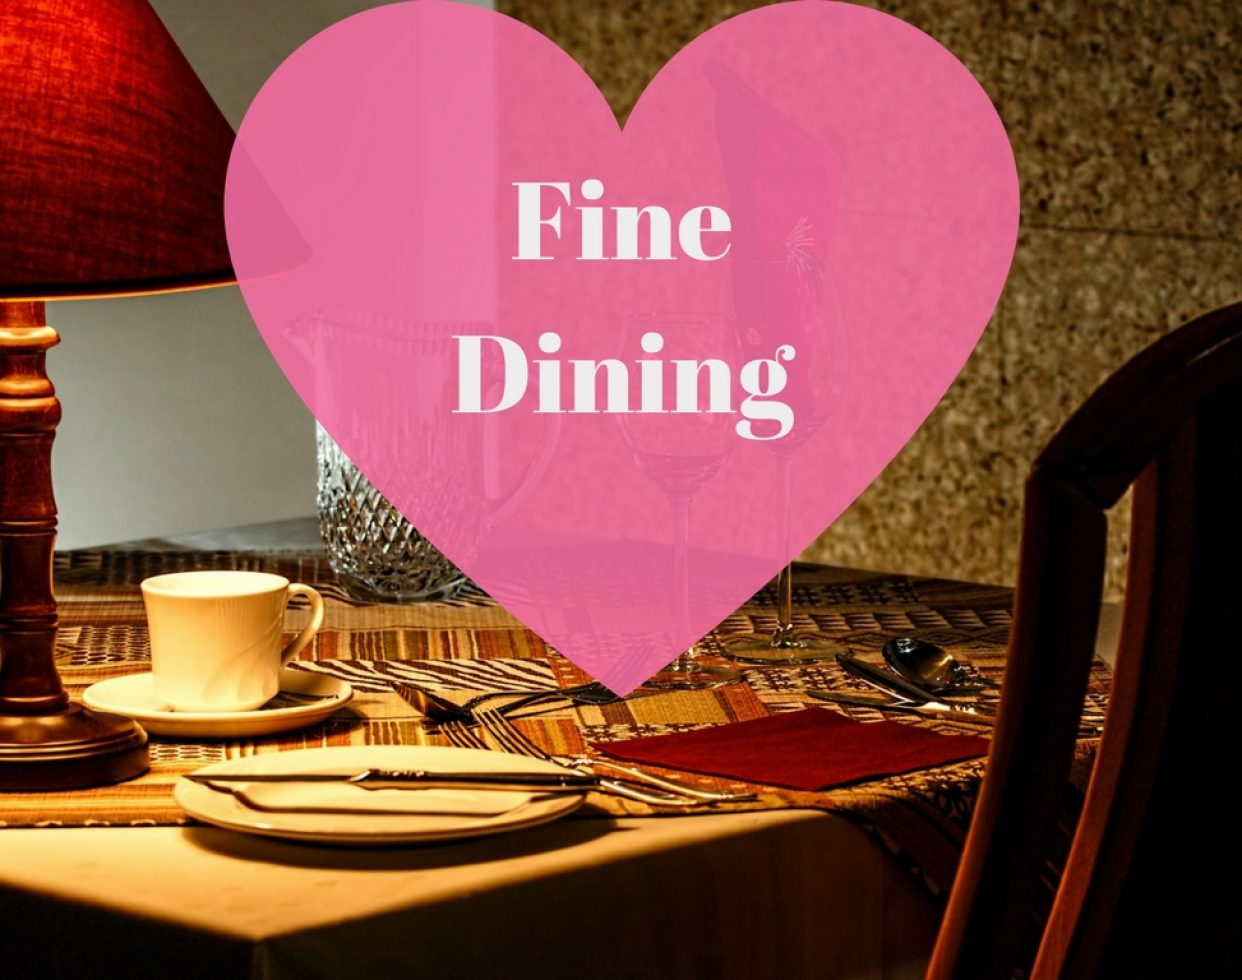 Many restaurants in Sacramento like Crepeville, Hana Tsubaki, The Rind and Grange Restaurant and Bar are fine eateries for two lovebirds looking for some wine and dine.  (Photo: stevepb // Pixabay)